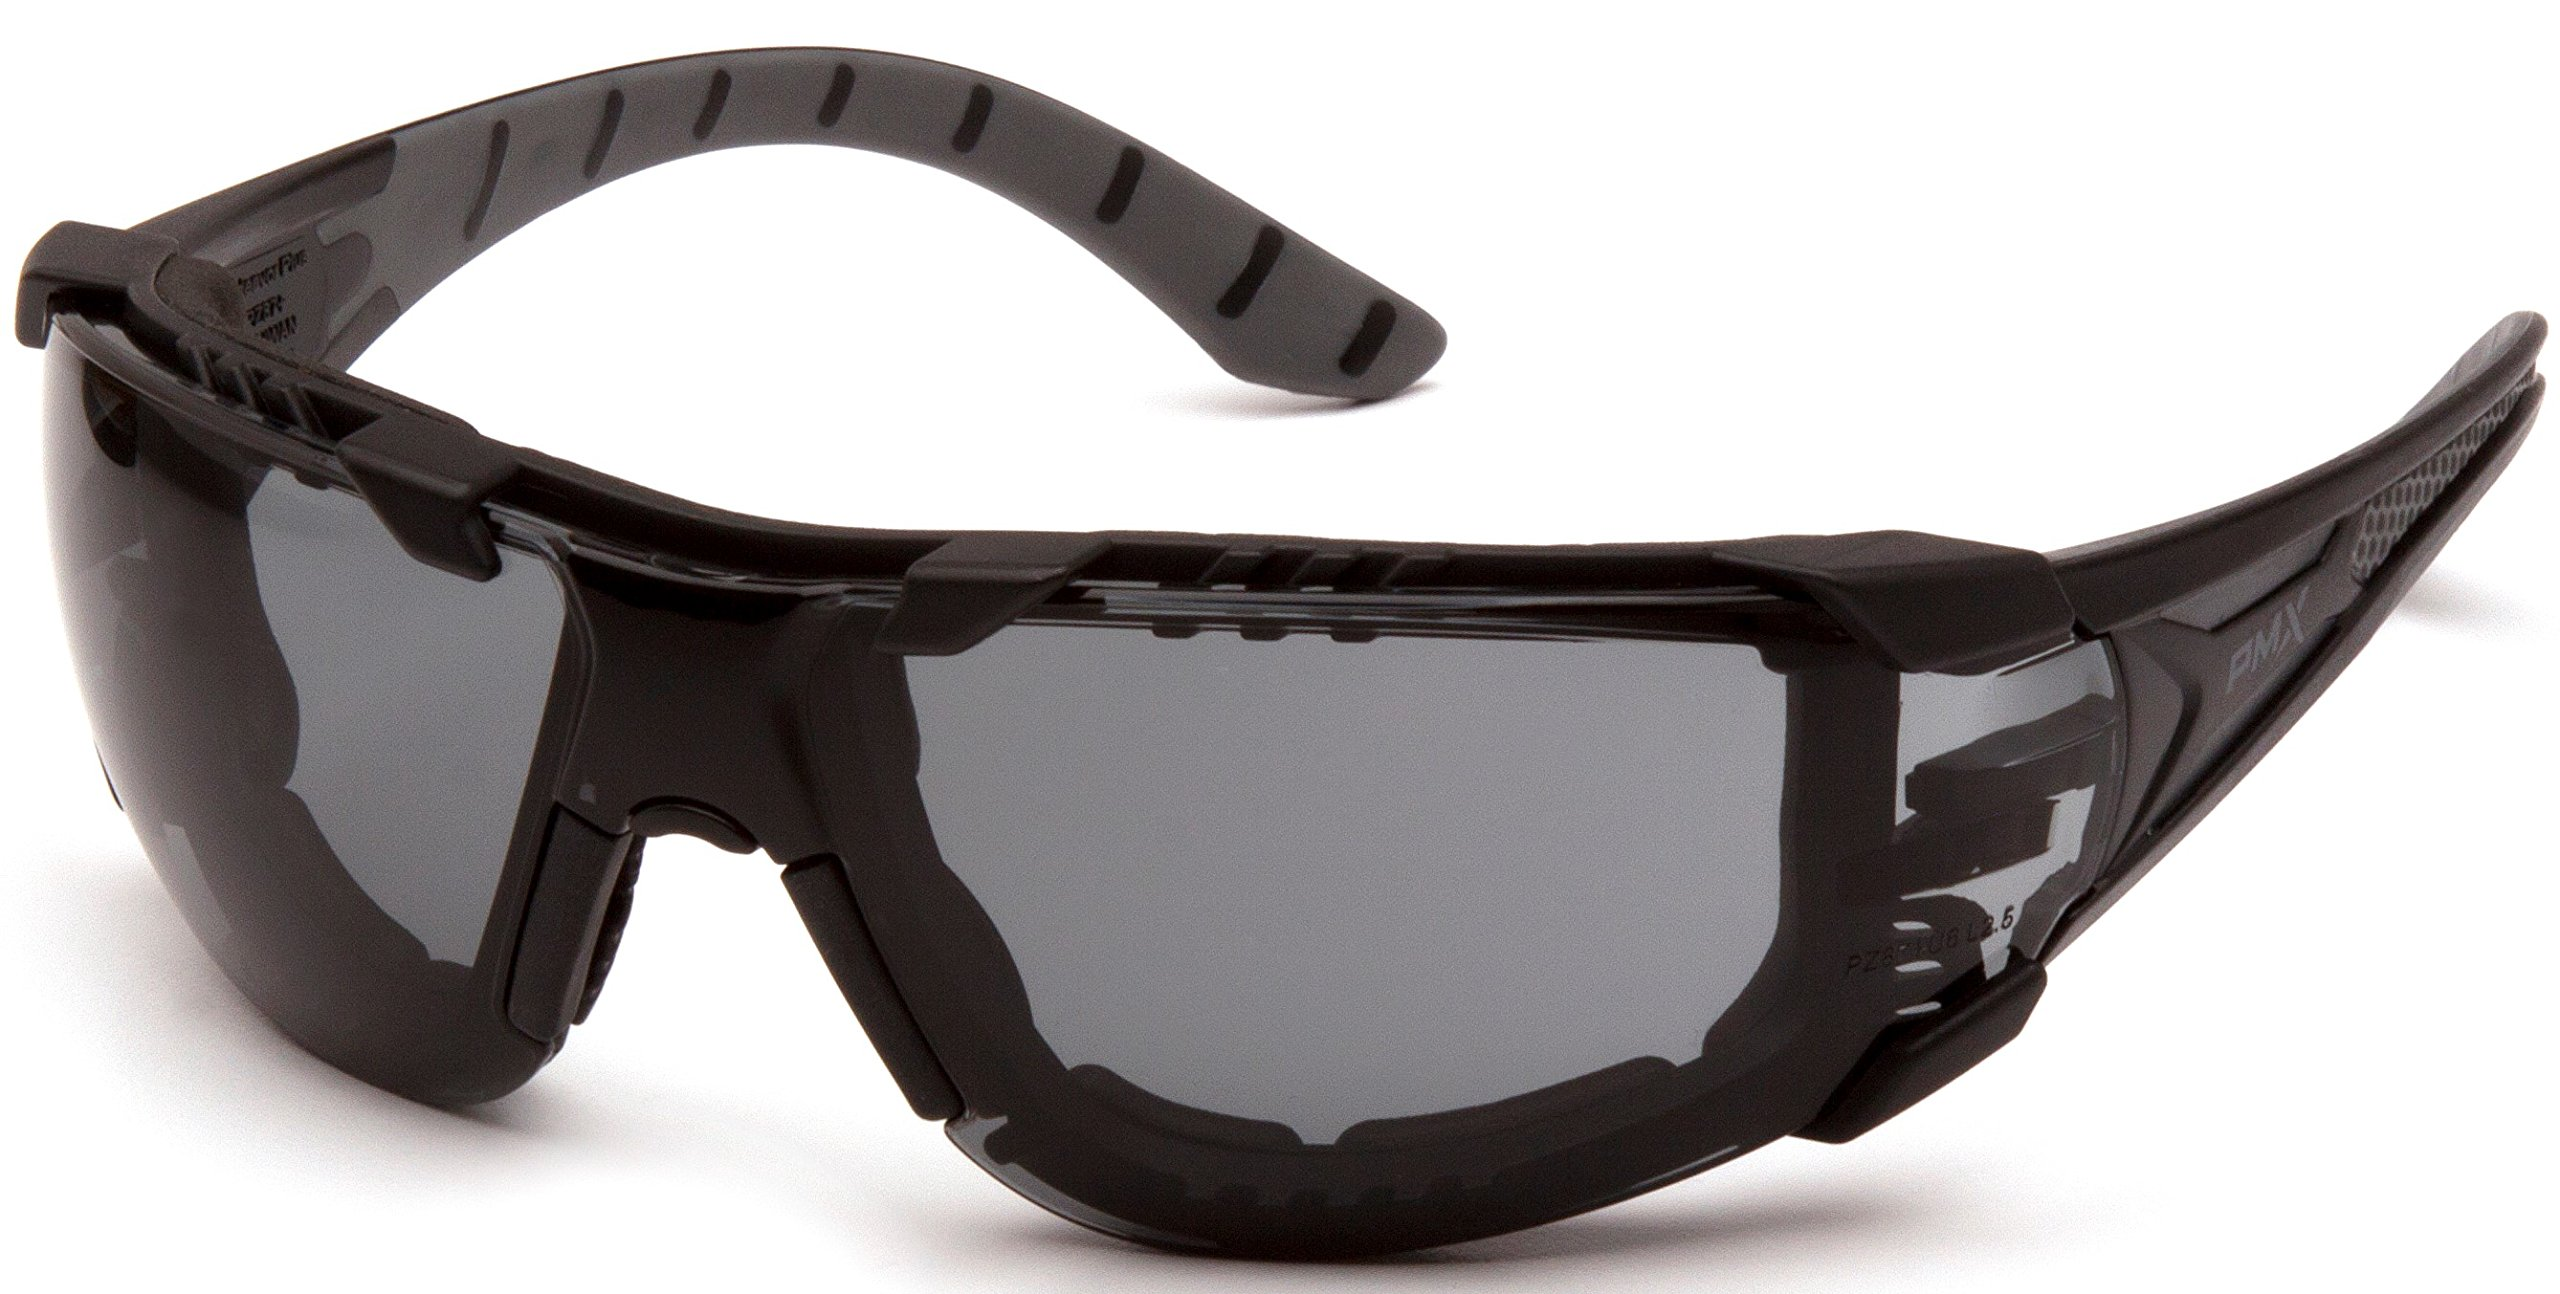 Pyramex Endeavor Plus Durable Safety Glasses, Black/Gray Foam Frame, Gray Anti-Fog Lens by Pyramex Safety